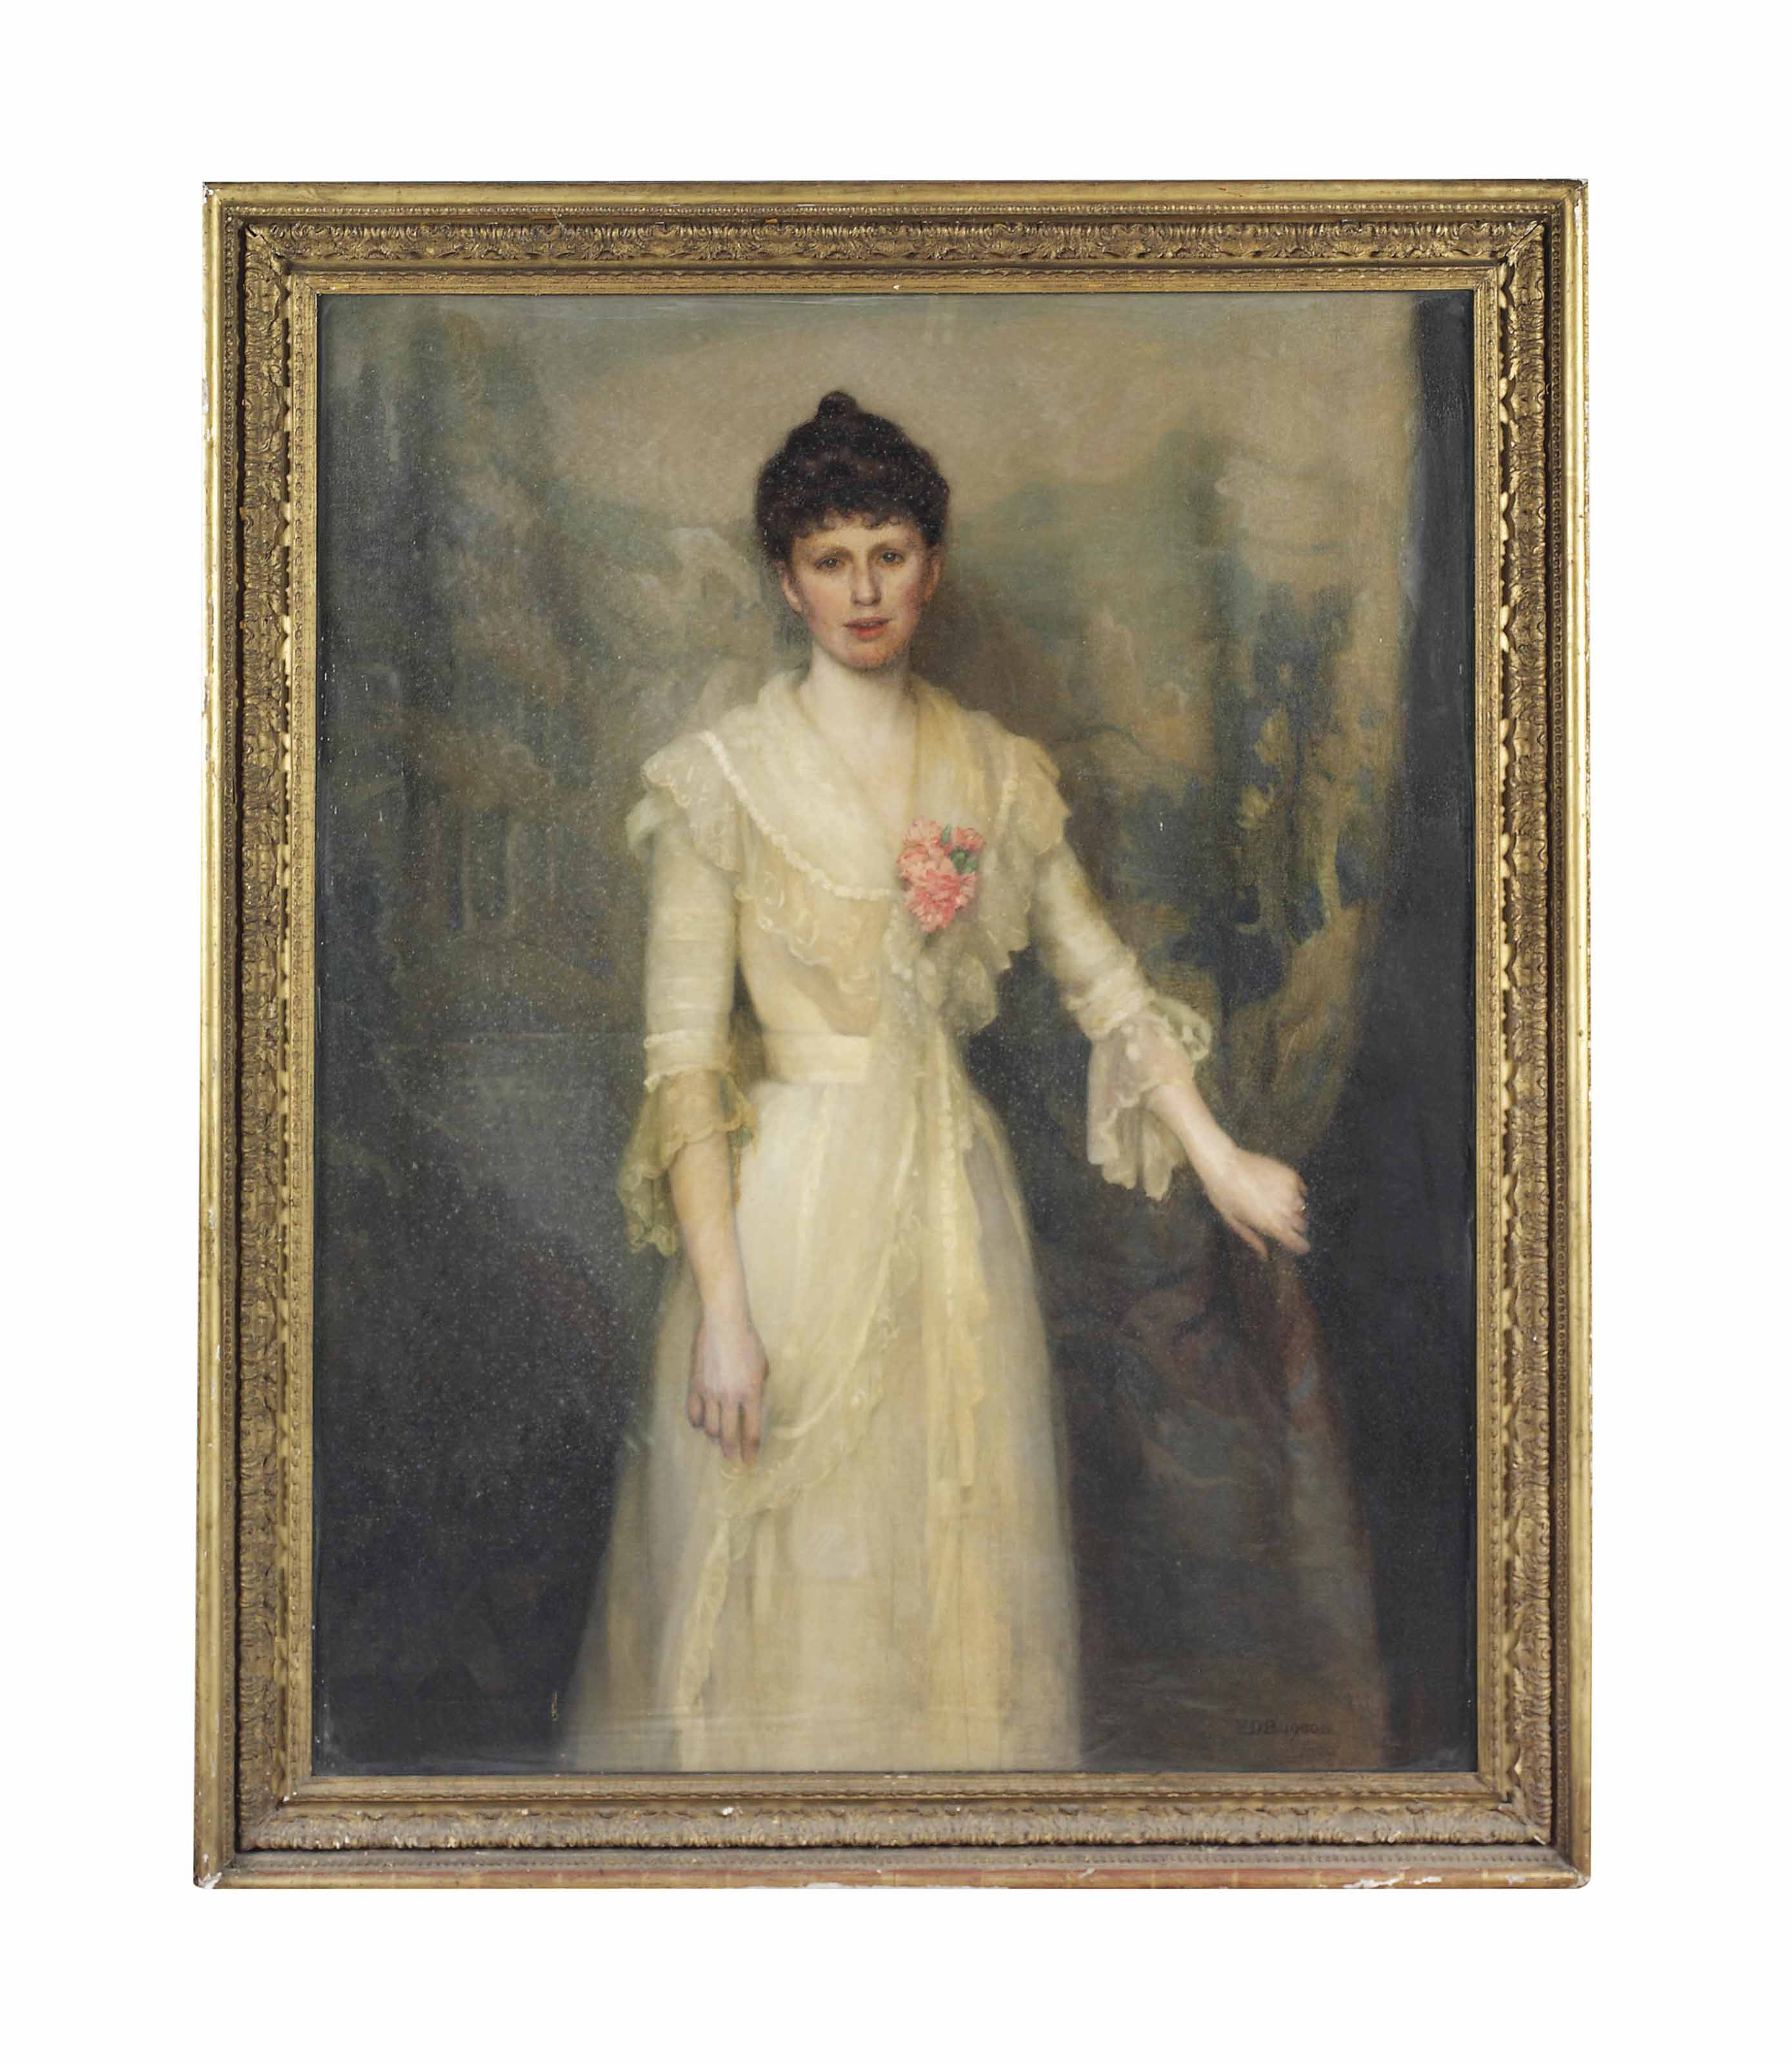 Portrait of Lady Esther Smith, three-quarter-length, wearing a white chiffon dress with a pink carnation